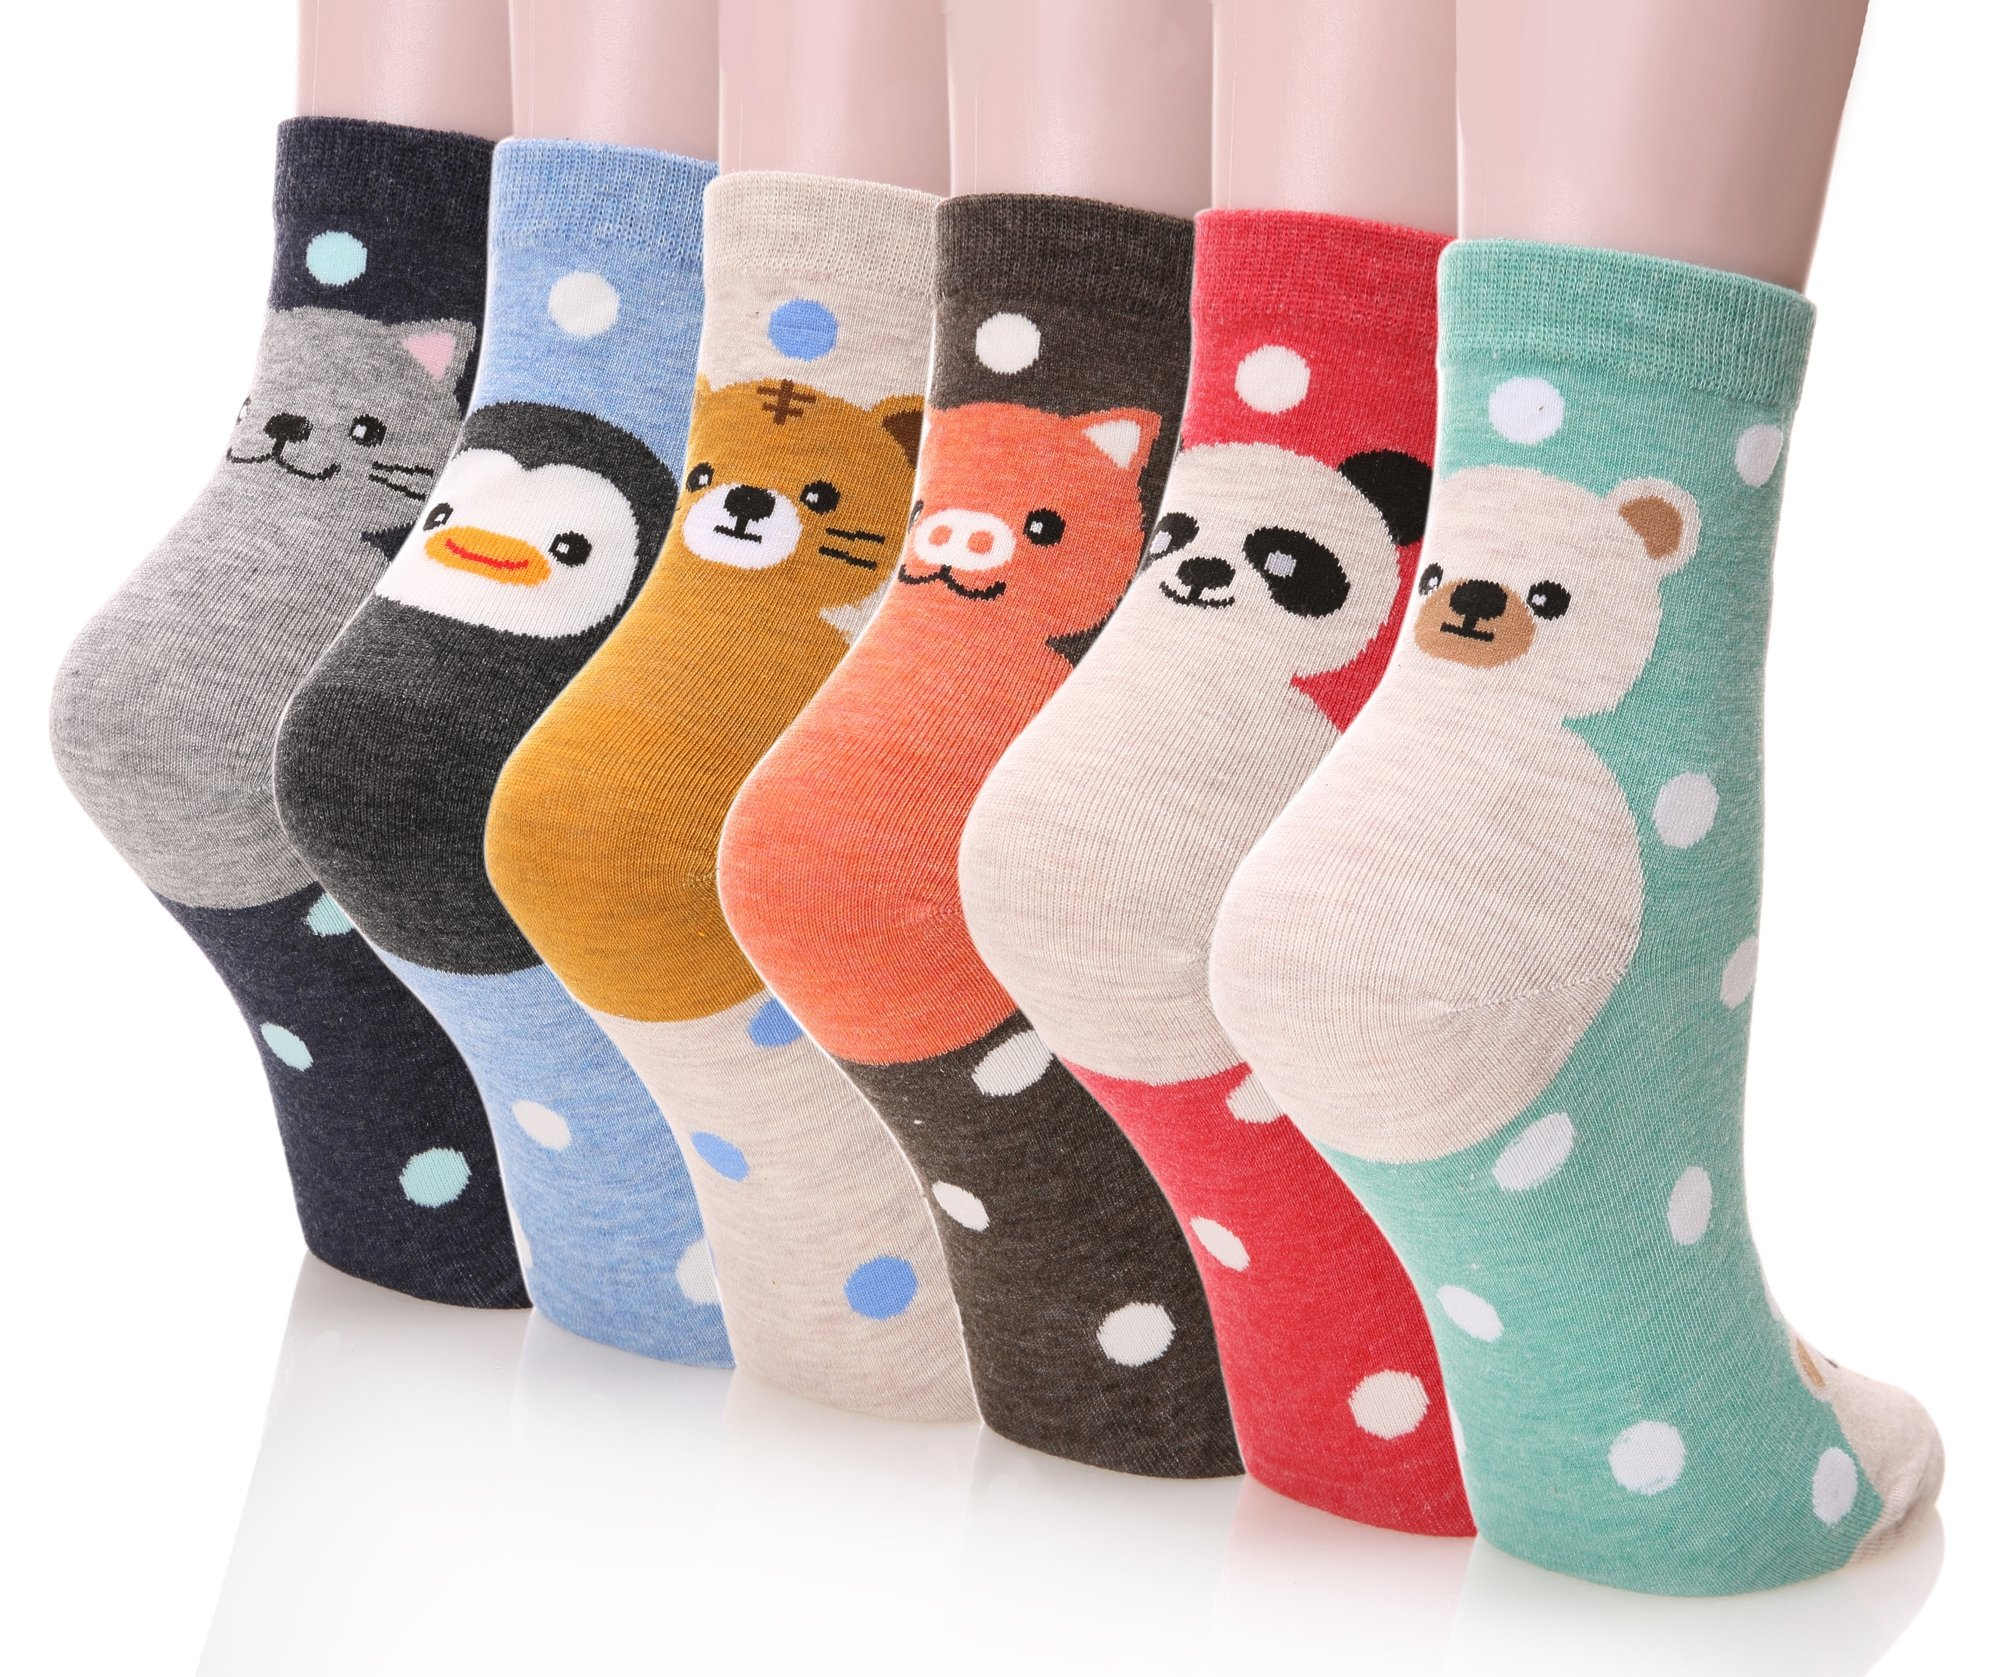 Practical 2019 Men Women Cotton Socks Colorful Patchwork Letter Skateboard Socks Womens Funny Socks Girl Casual Socks Underwear & Sleepwears